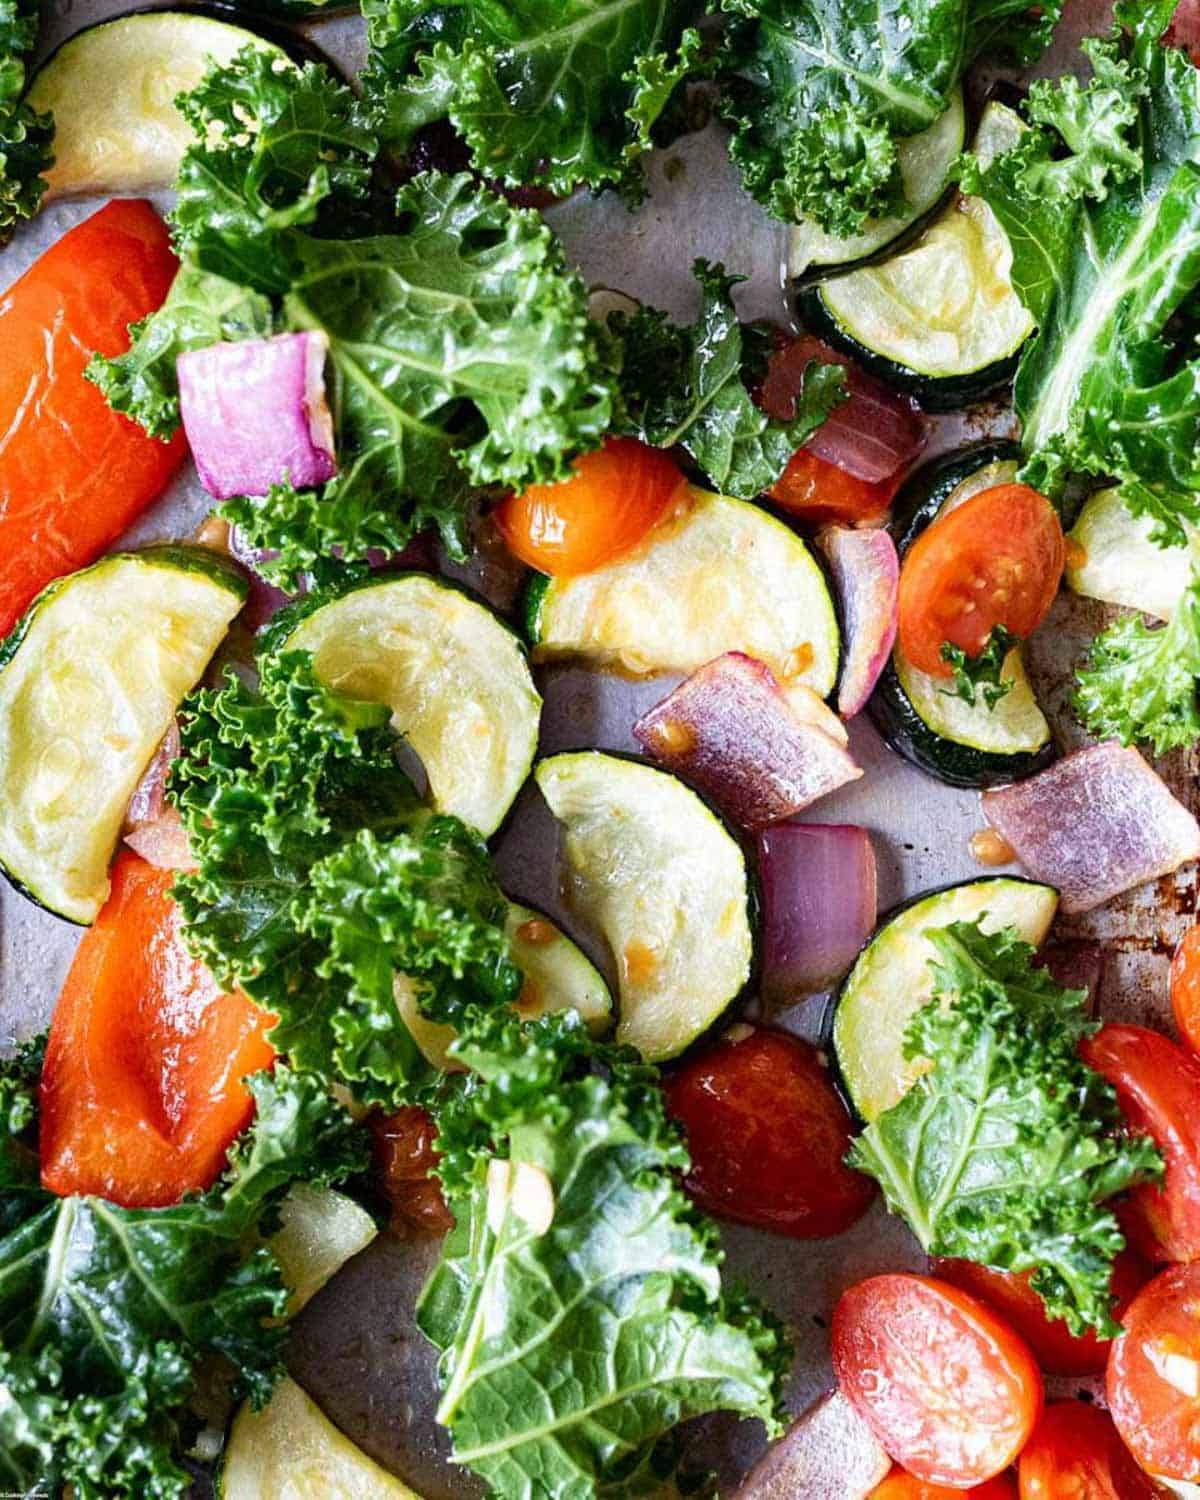 Roasted vegetables for the pasta salad. Chopped red onion, grape tomatoes, zucchini, and kale.